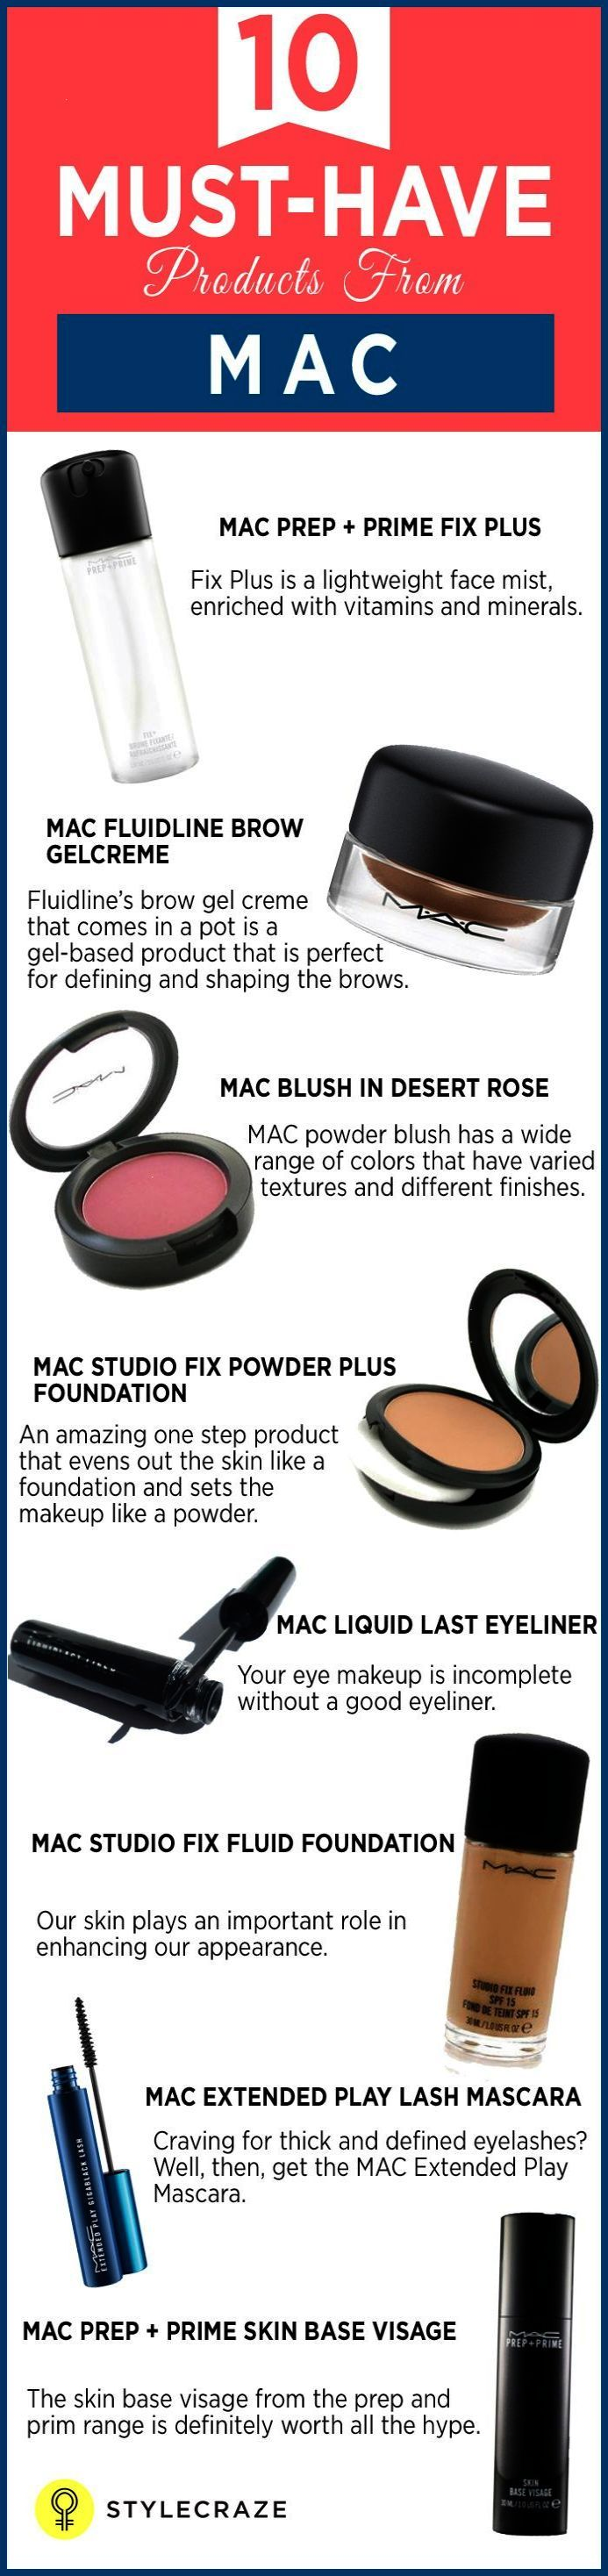 One Of The Leading Cosmetic Brands Worldwide The Acronym Mac Stands For Makeup Artist Cosmetics Mac Offers A Wid Top Makeup Products Makeup Makeup Accessories